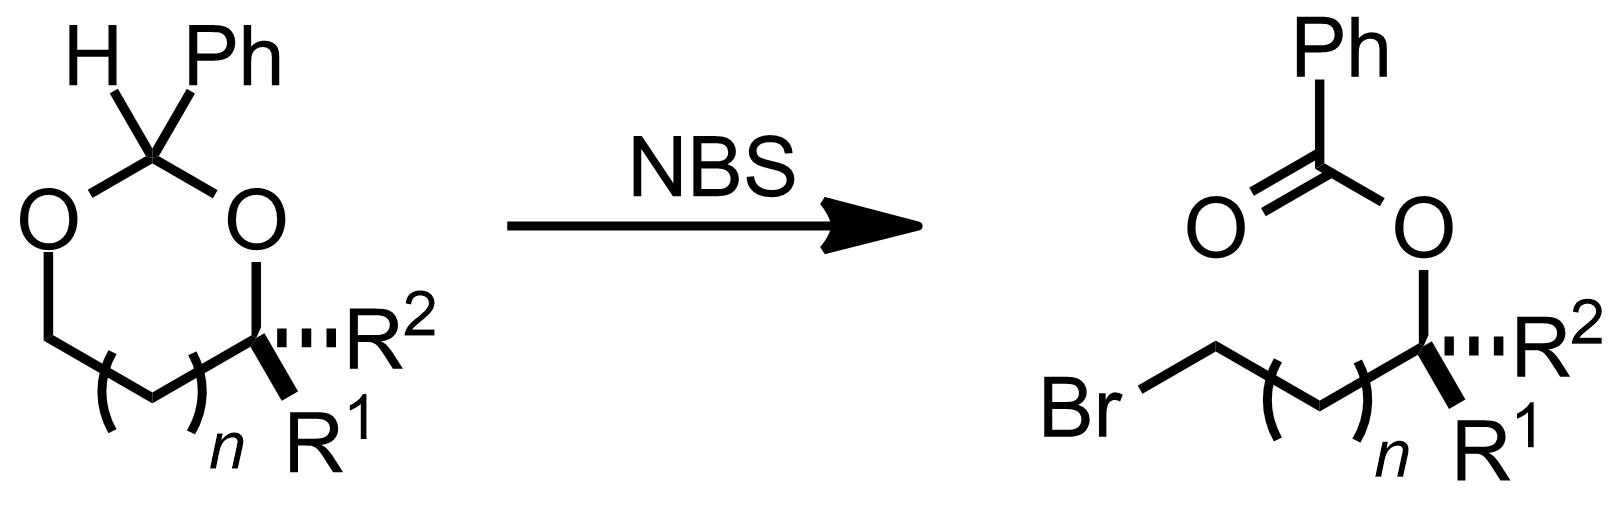 Schematic representation of the Hanessian-Hullar Reaction.